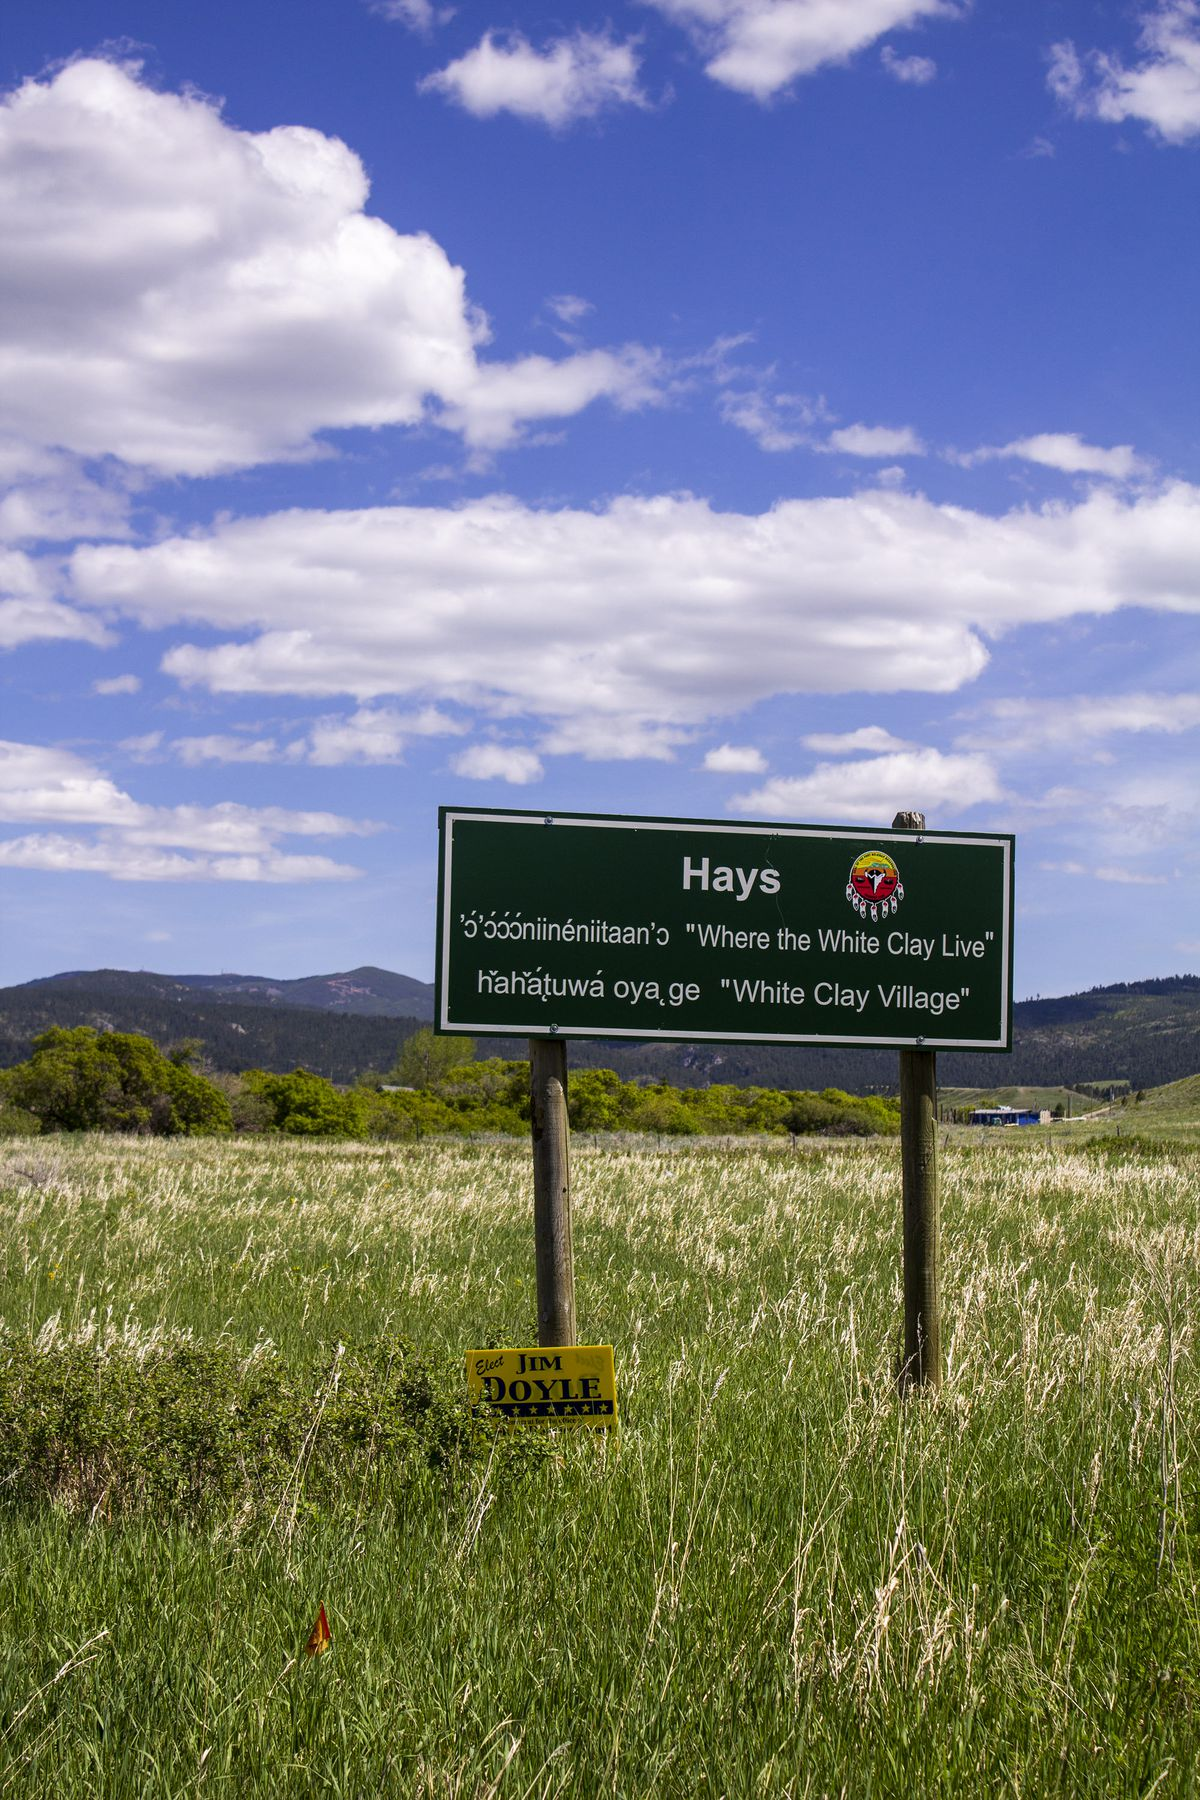 A sign shows the area of Hays, and features the languages of Fort Belknap's two tribes.